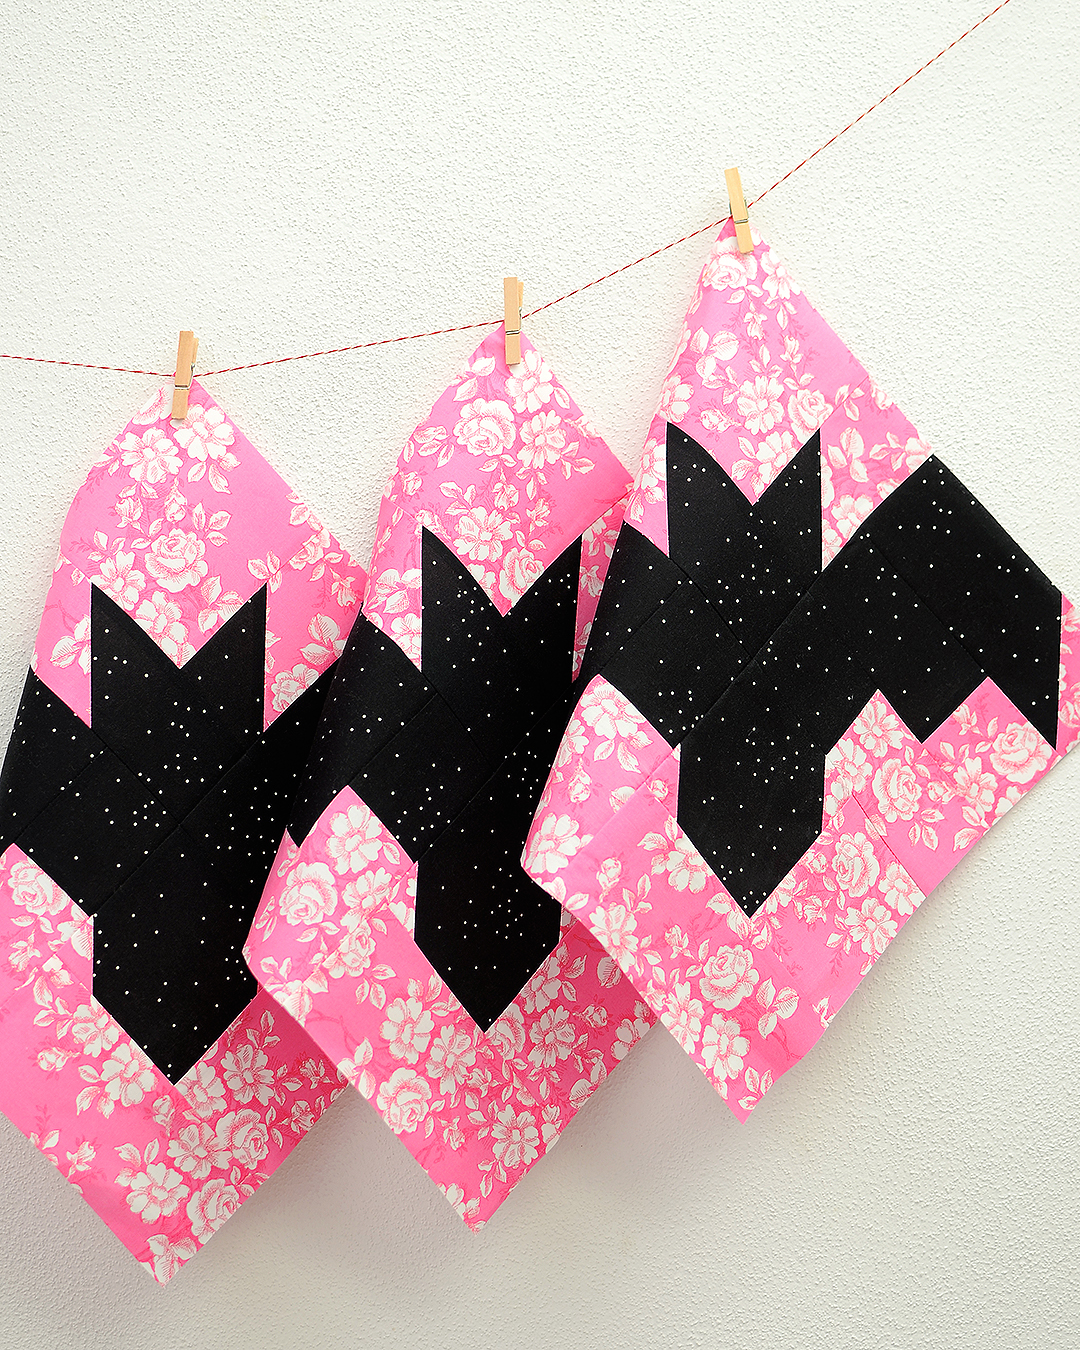 Bat quilt blocks